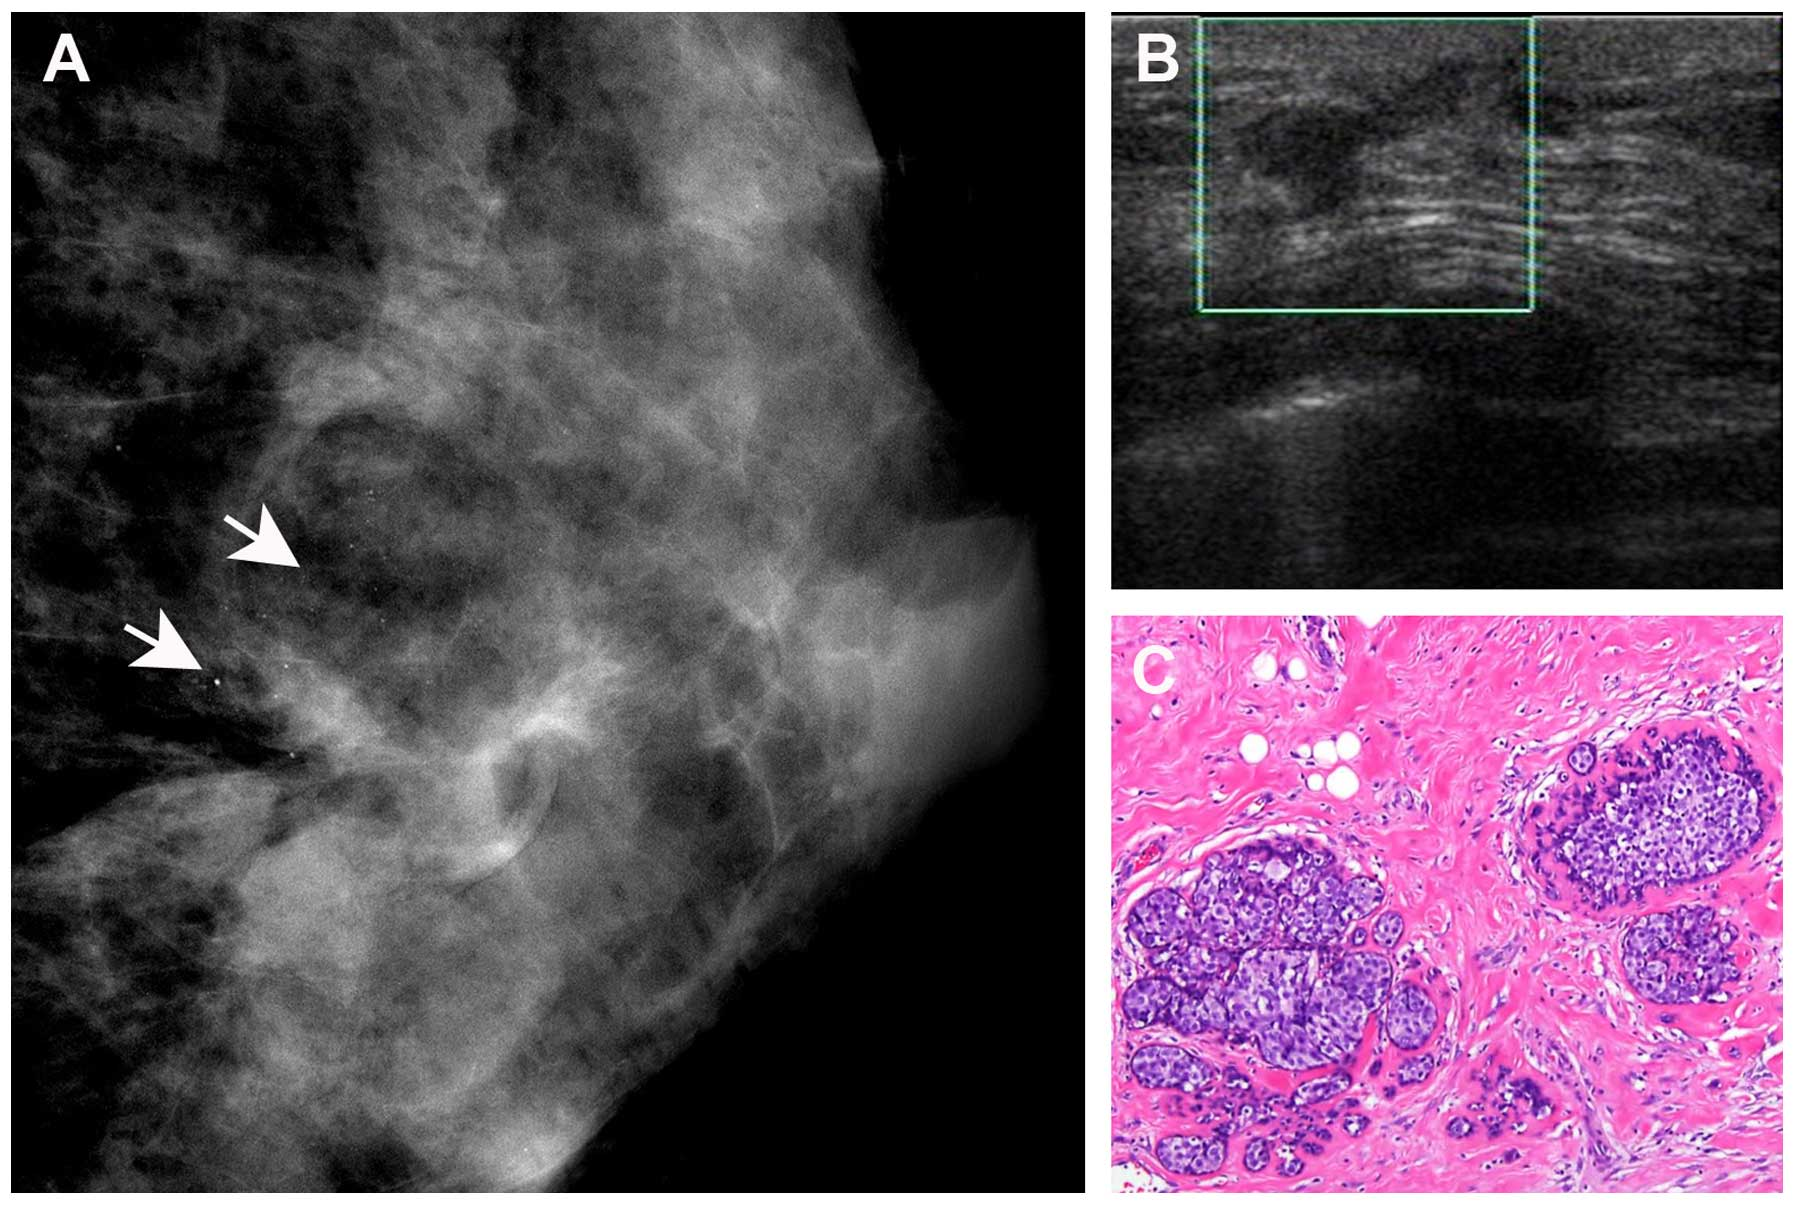 A 35-year-old breast cancer patient with residual disease of the left breast  following lumpectomy. (A) Mammography revealed heterogeneously dense breast  ...